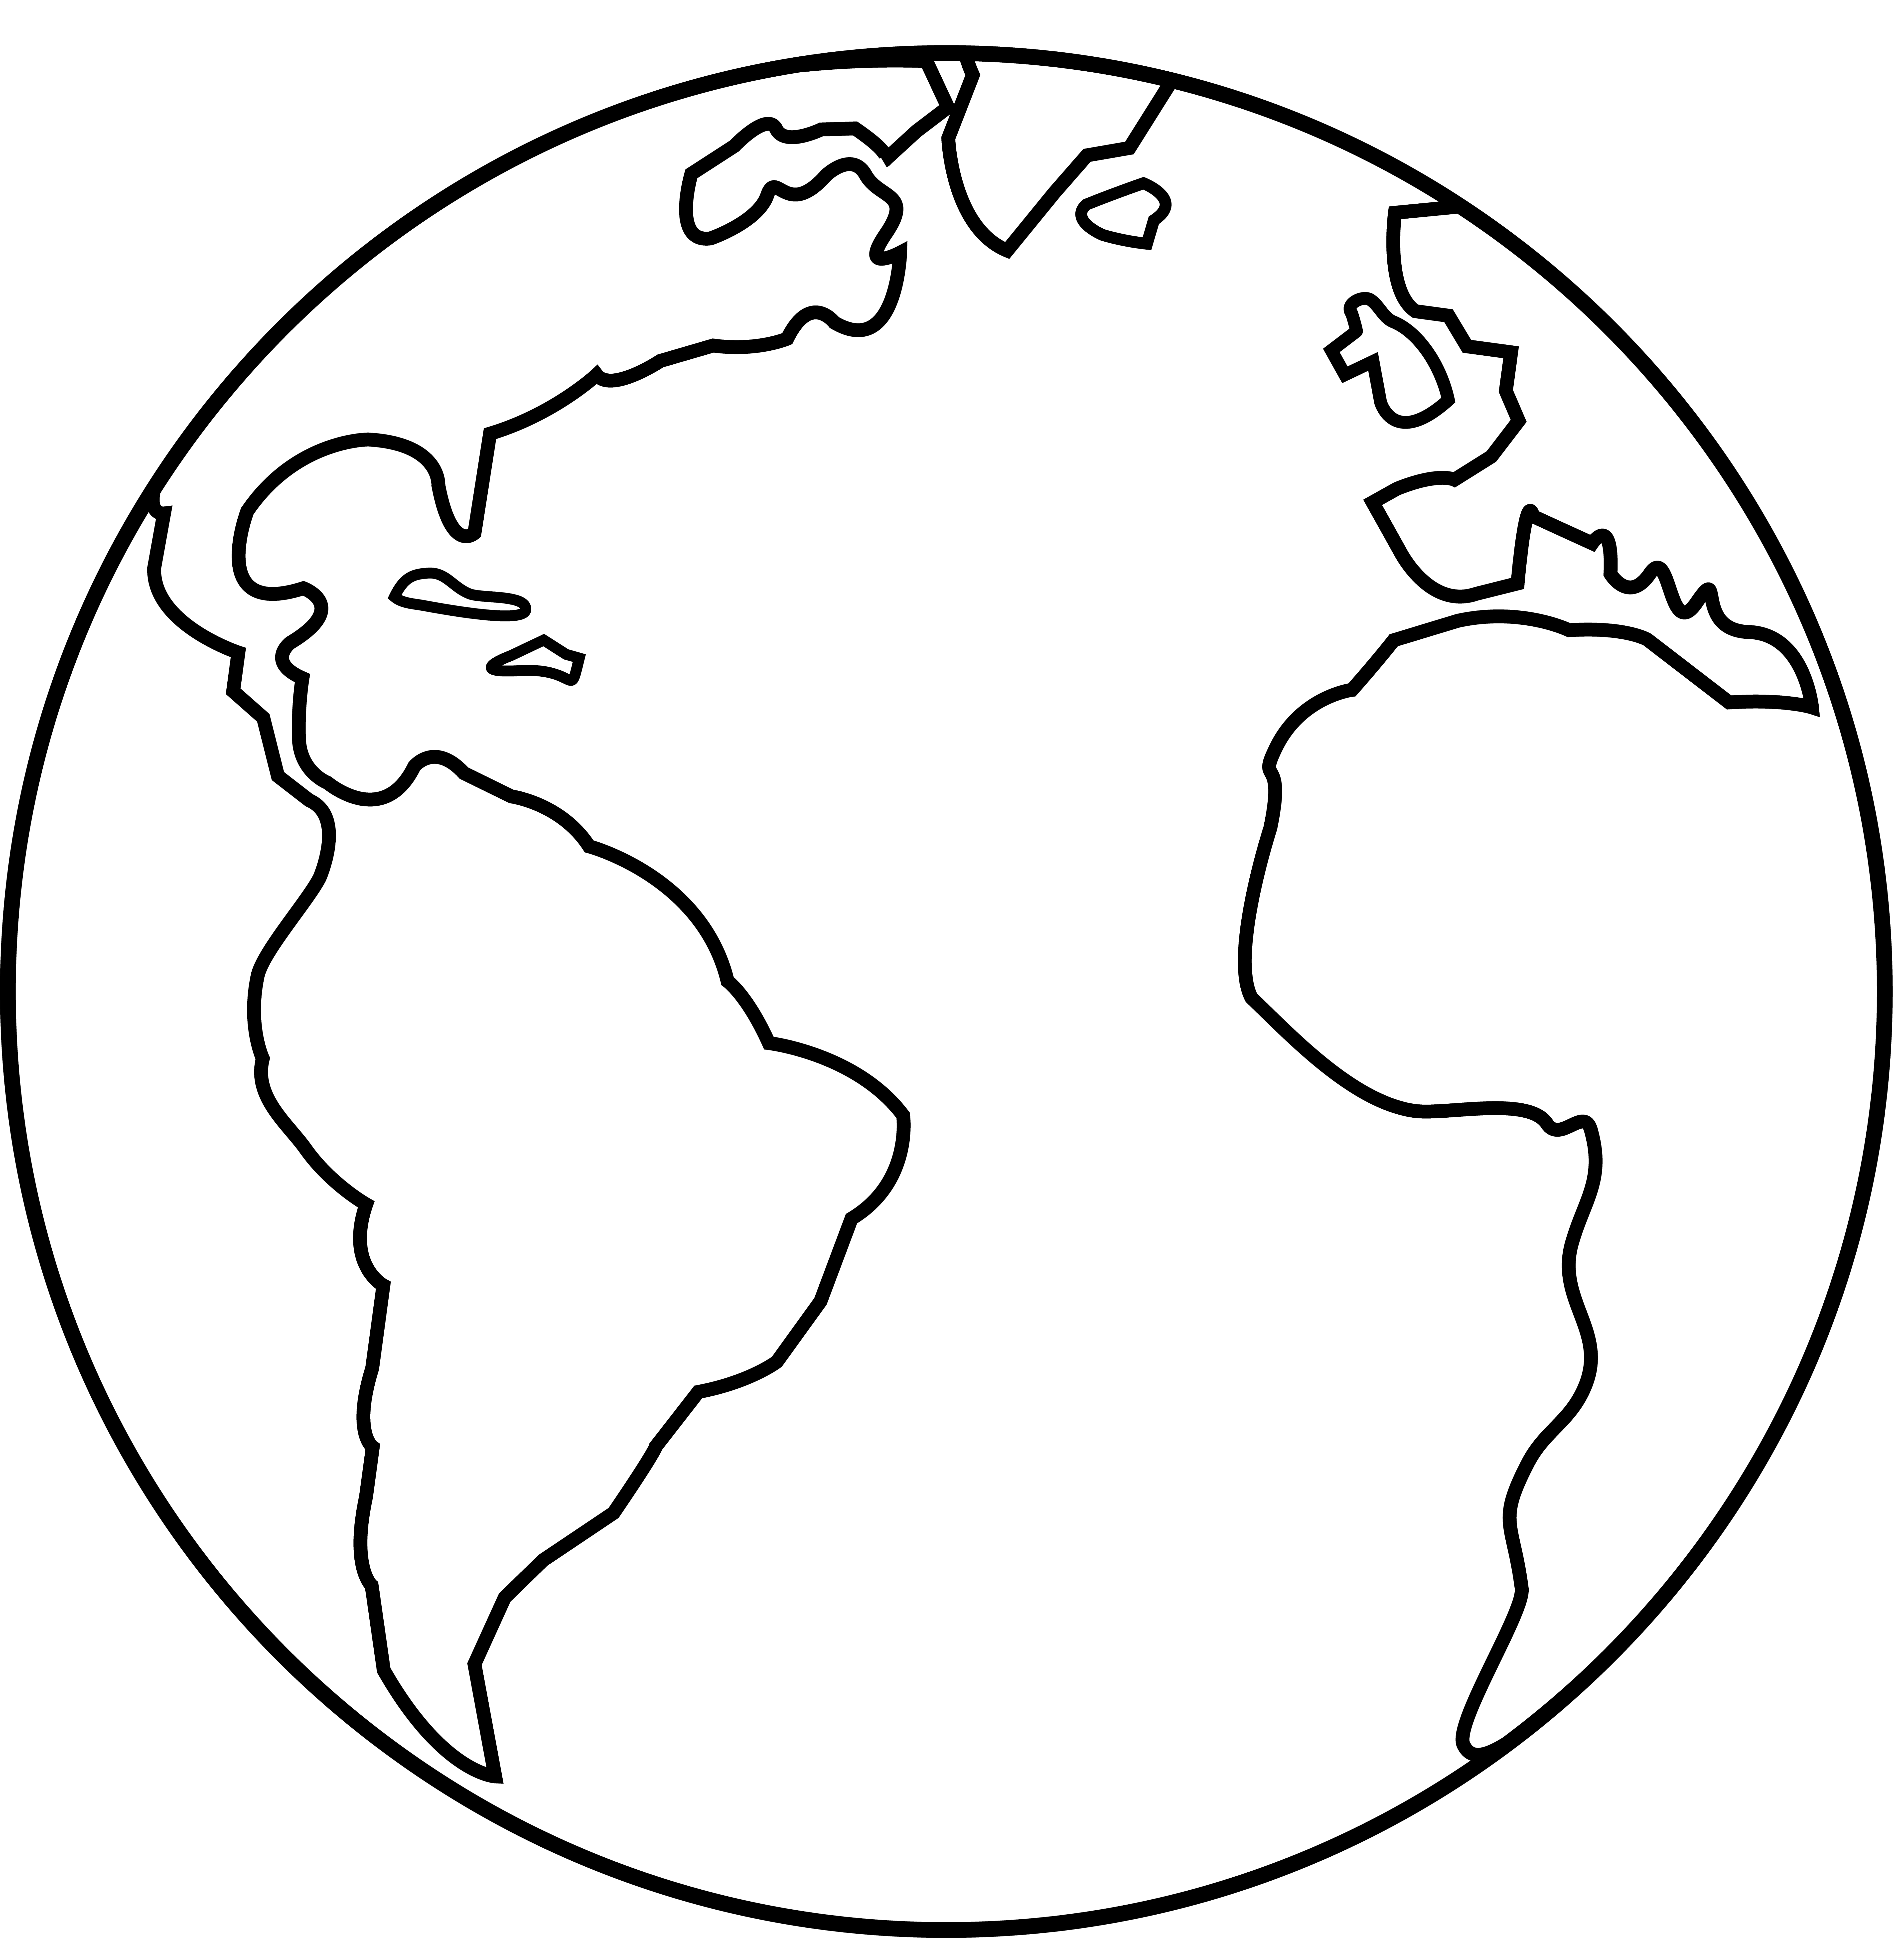 Sun and earth black and white clipart image black and white stock 28+ Collection of Earth Black And White Drawing | High quality, free ... image black and white stock